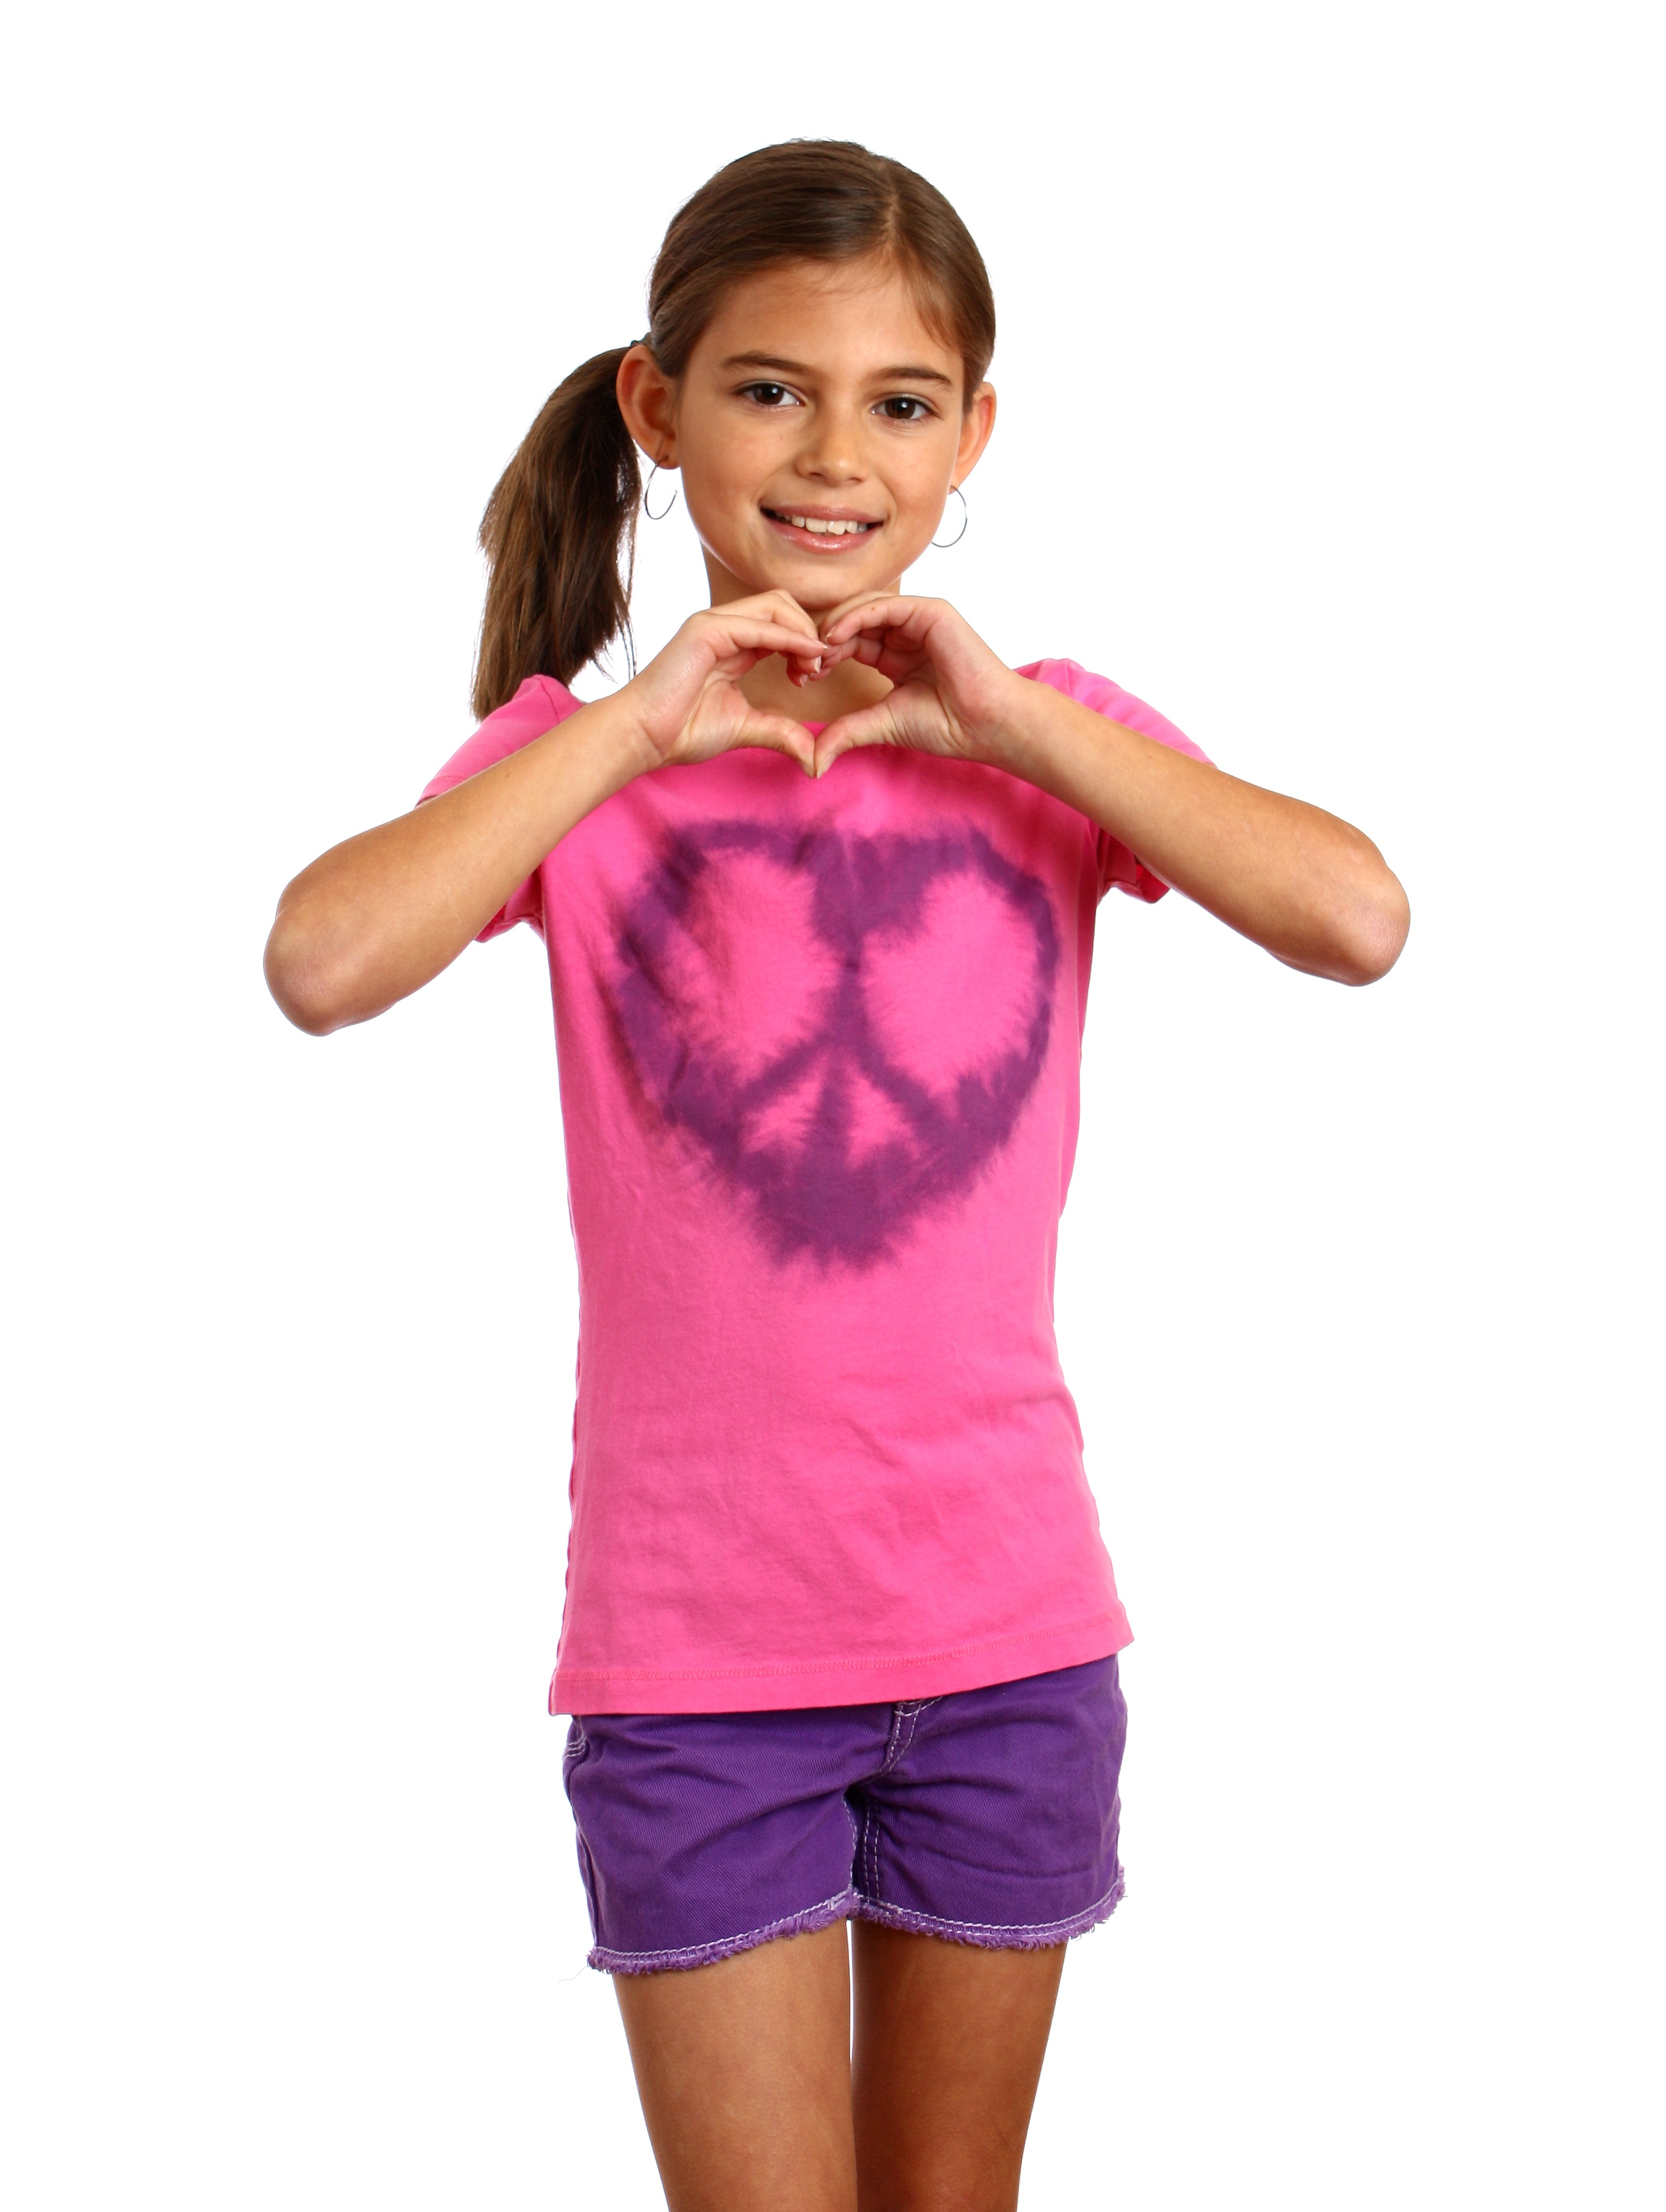 A cute young girl making a heart symbol, Beautiful, Isolated, Symbols, Pretty, HQ Photo